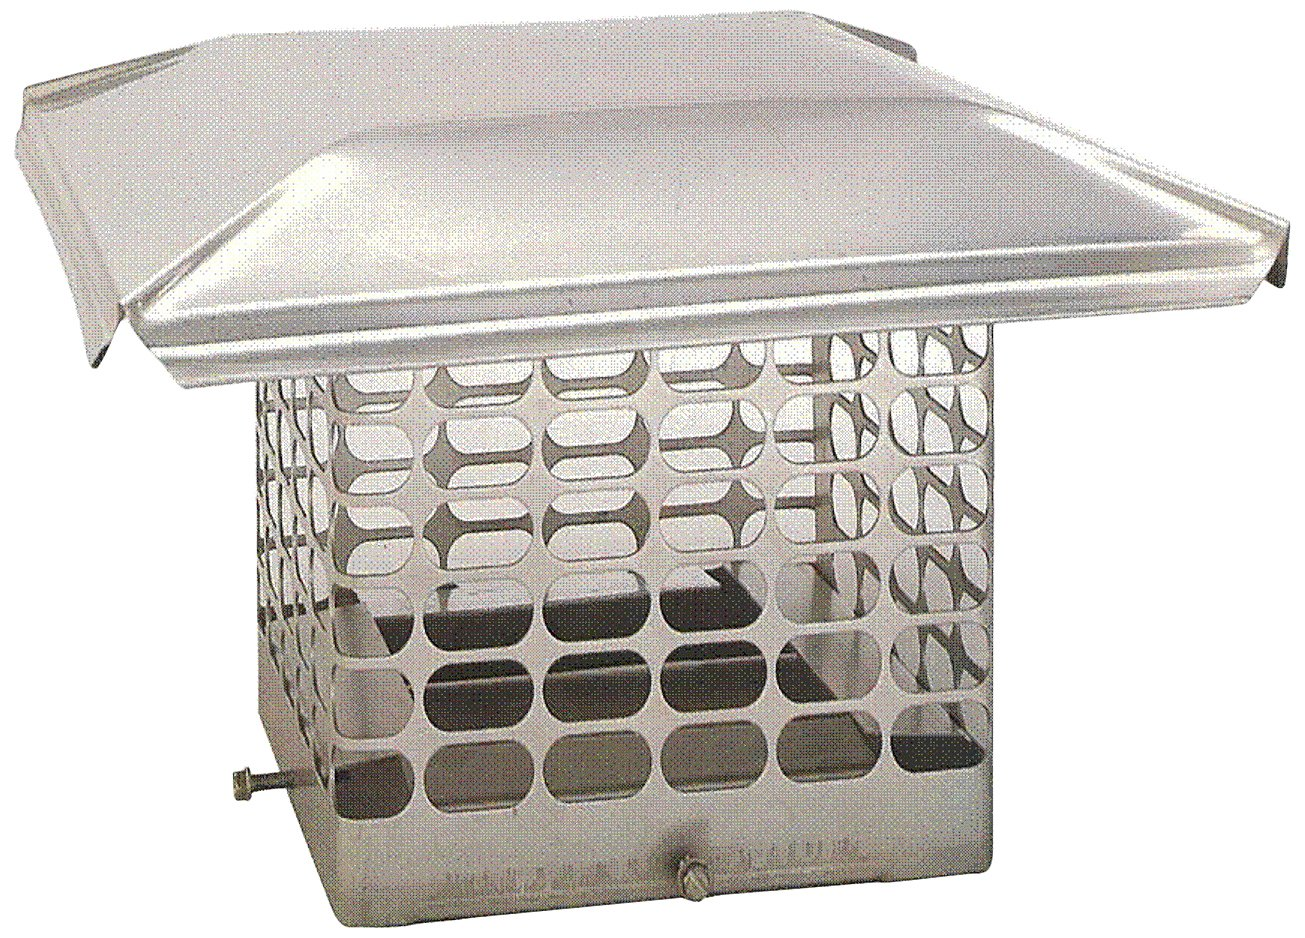 The Forever Cap CCSS813 8 x 13-Inch Stainless Steel Single Flue Chimney Cap